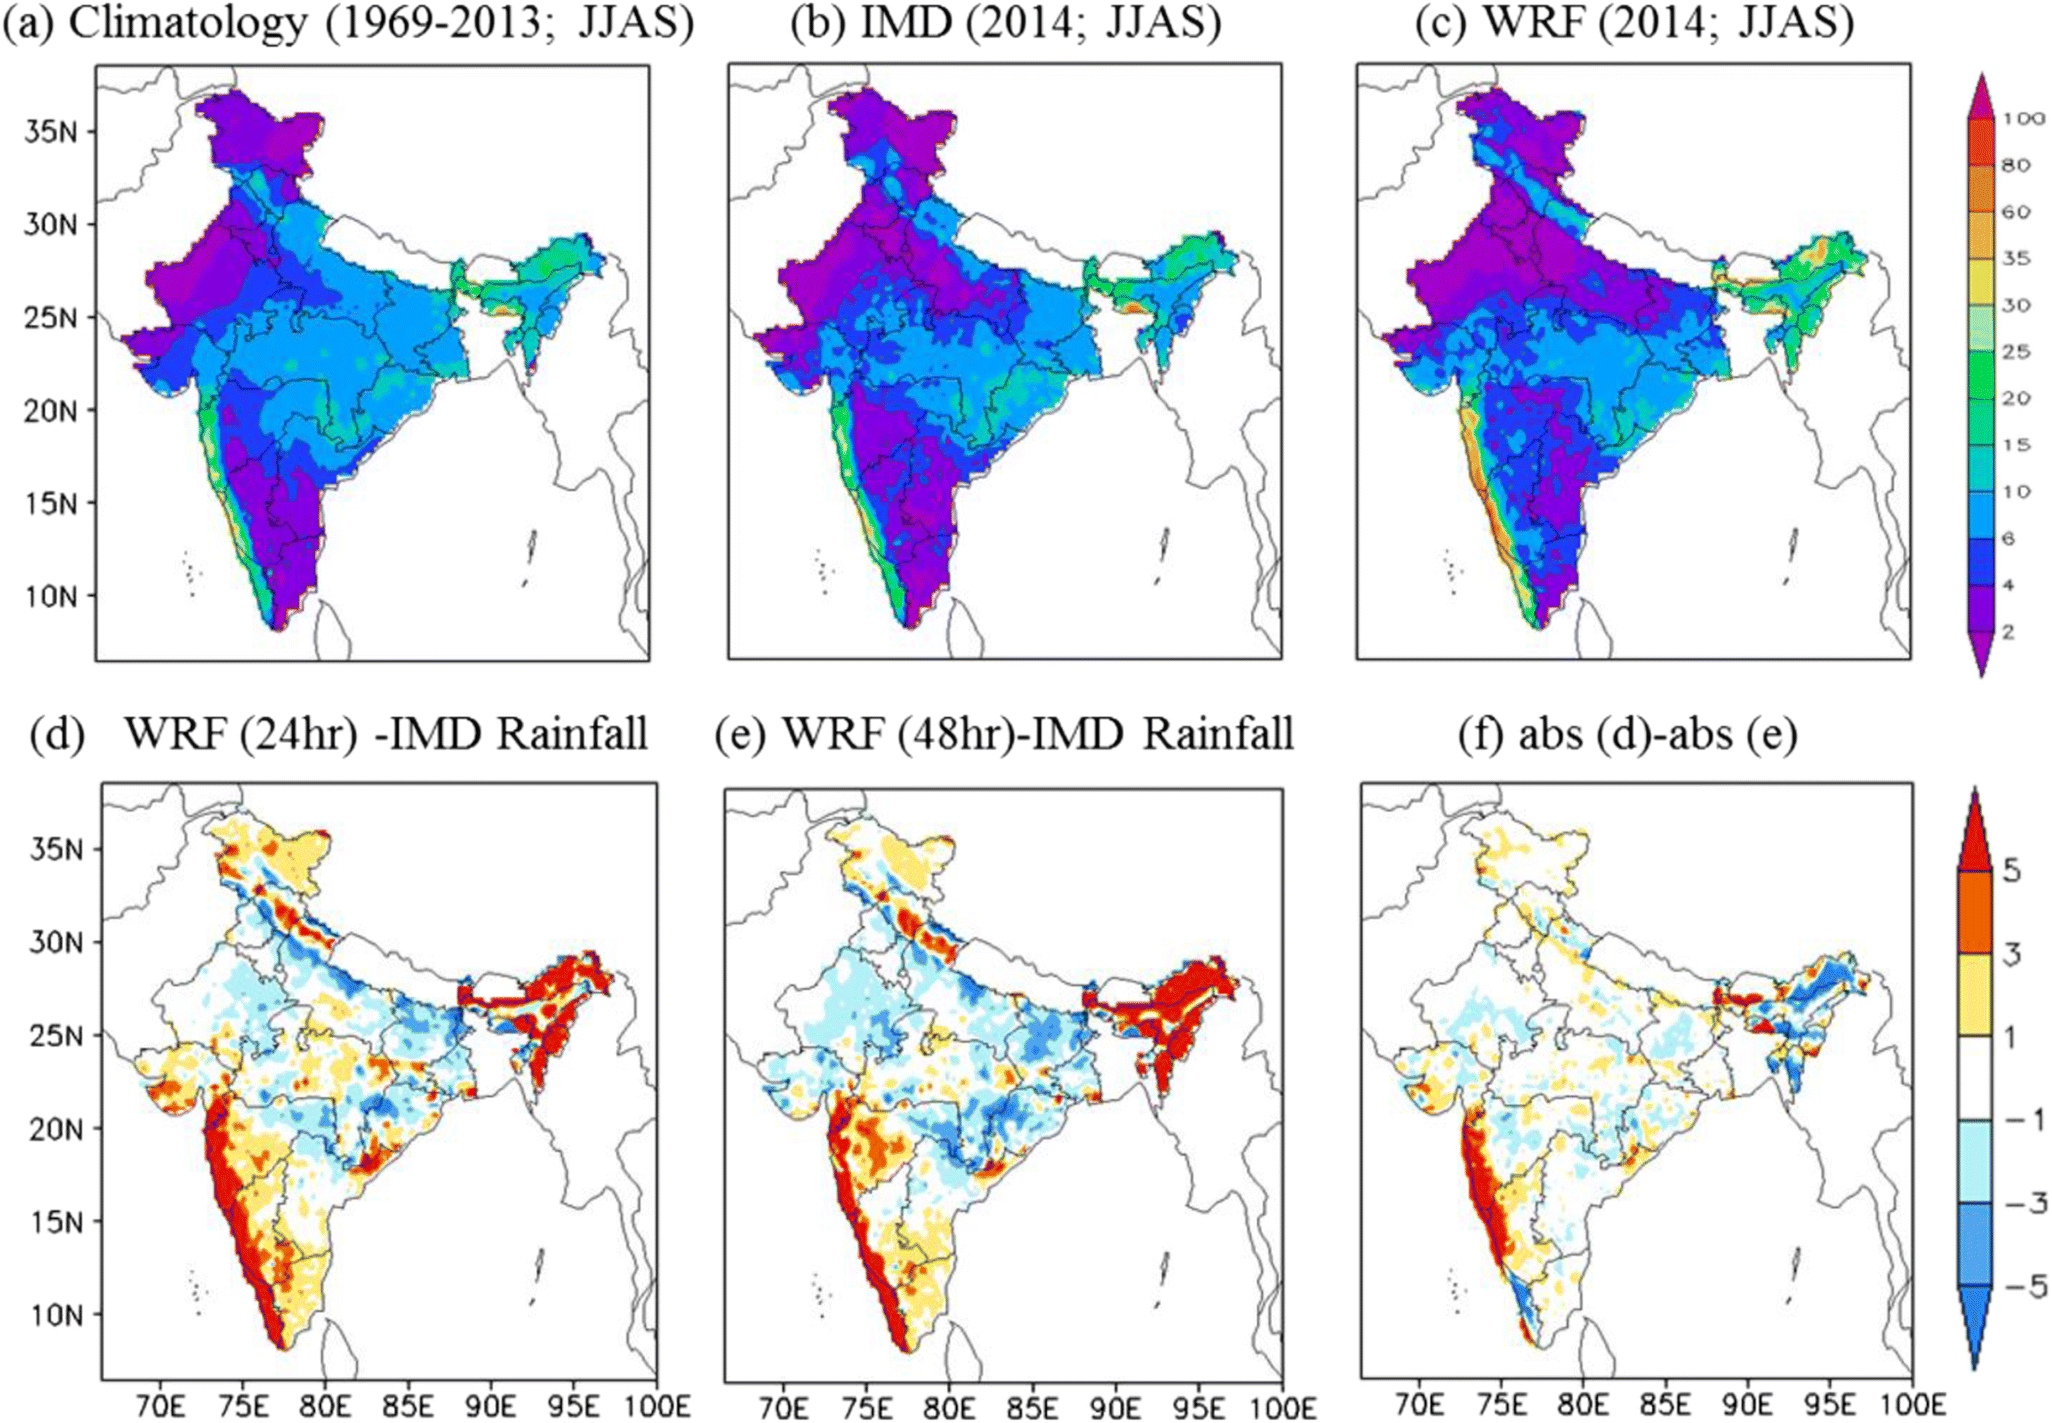 Evaluation of the Weather Research and Forecasting Model Forecasts